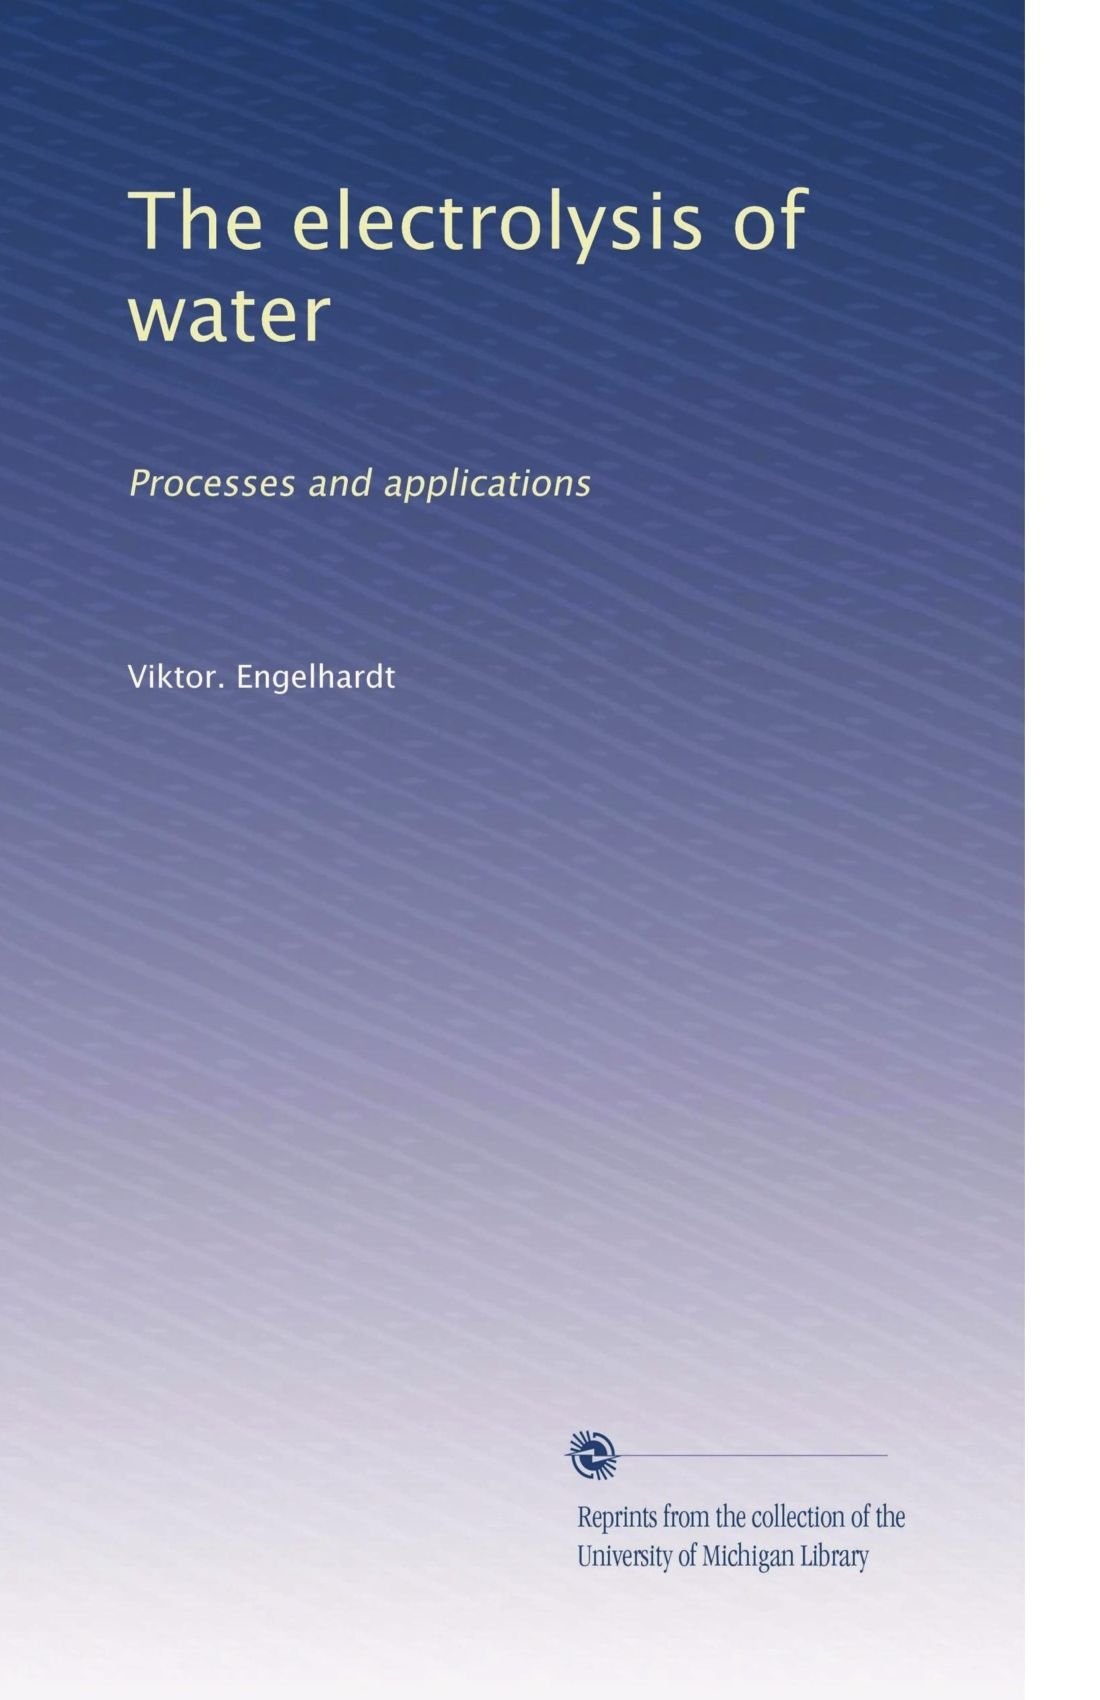 The electrolysis of water: Processes and applications: Viktor